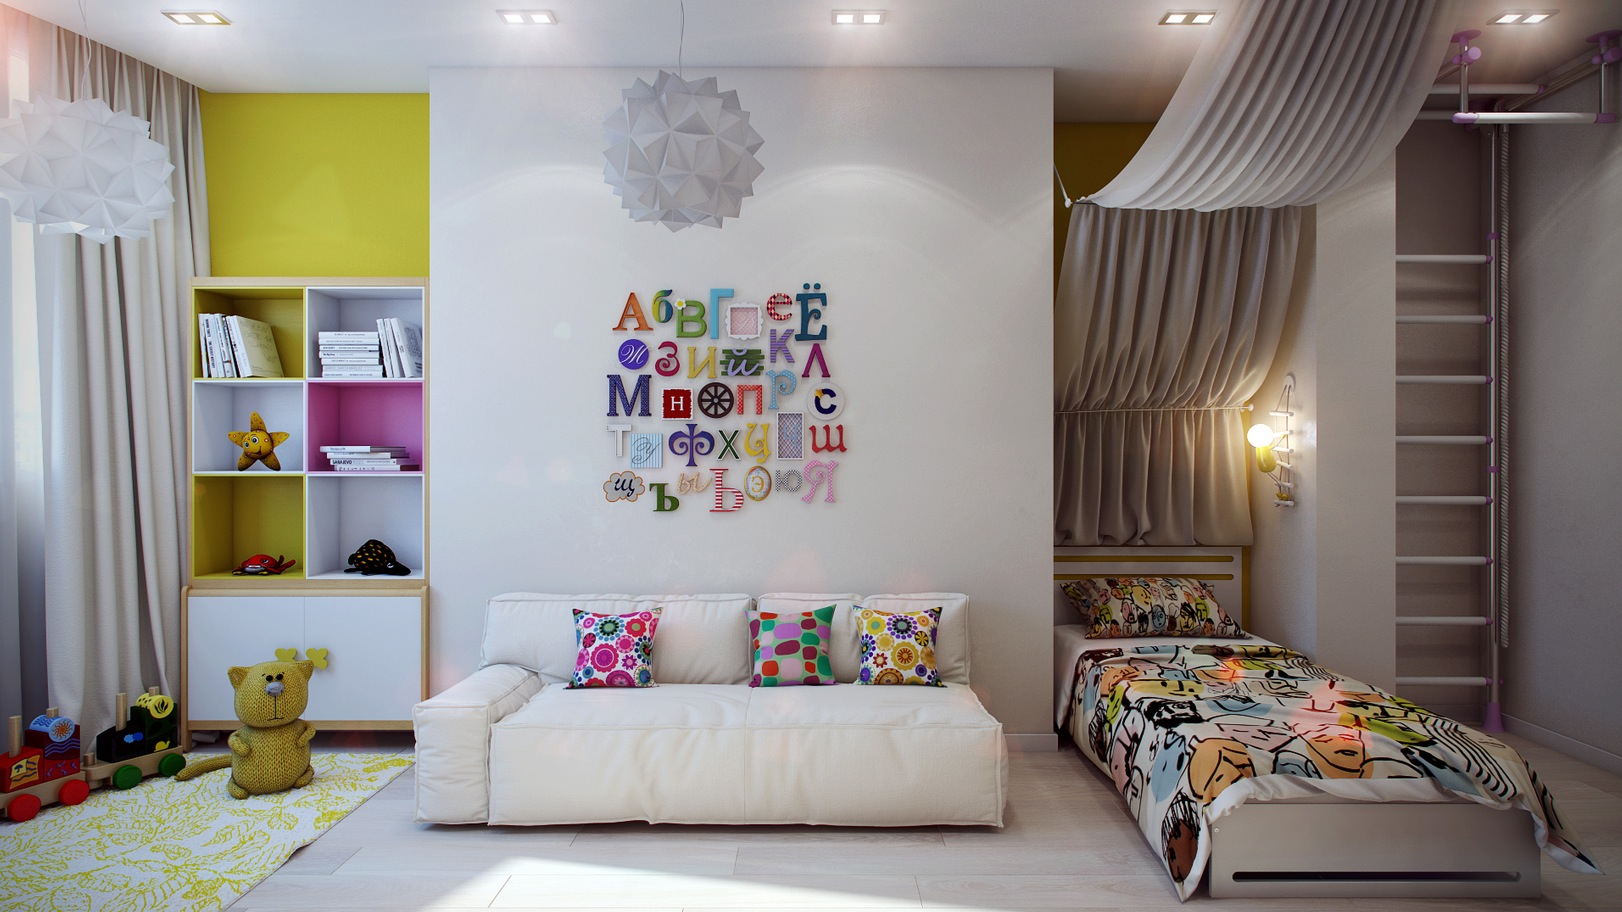 Casting color over kids rooms - Bedroom for kids ...